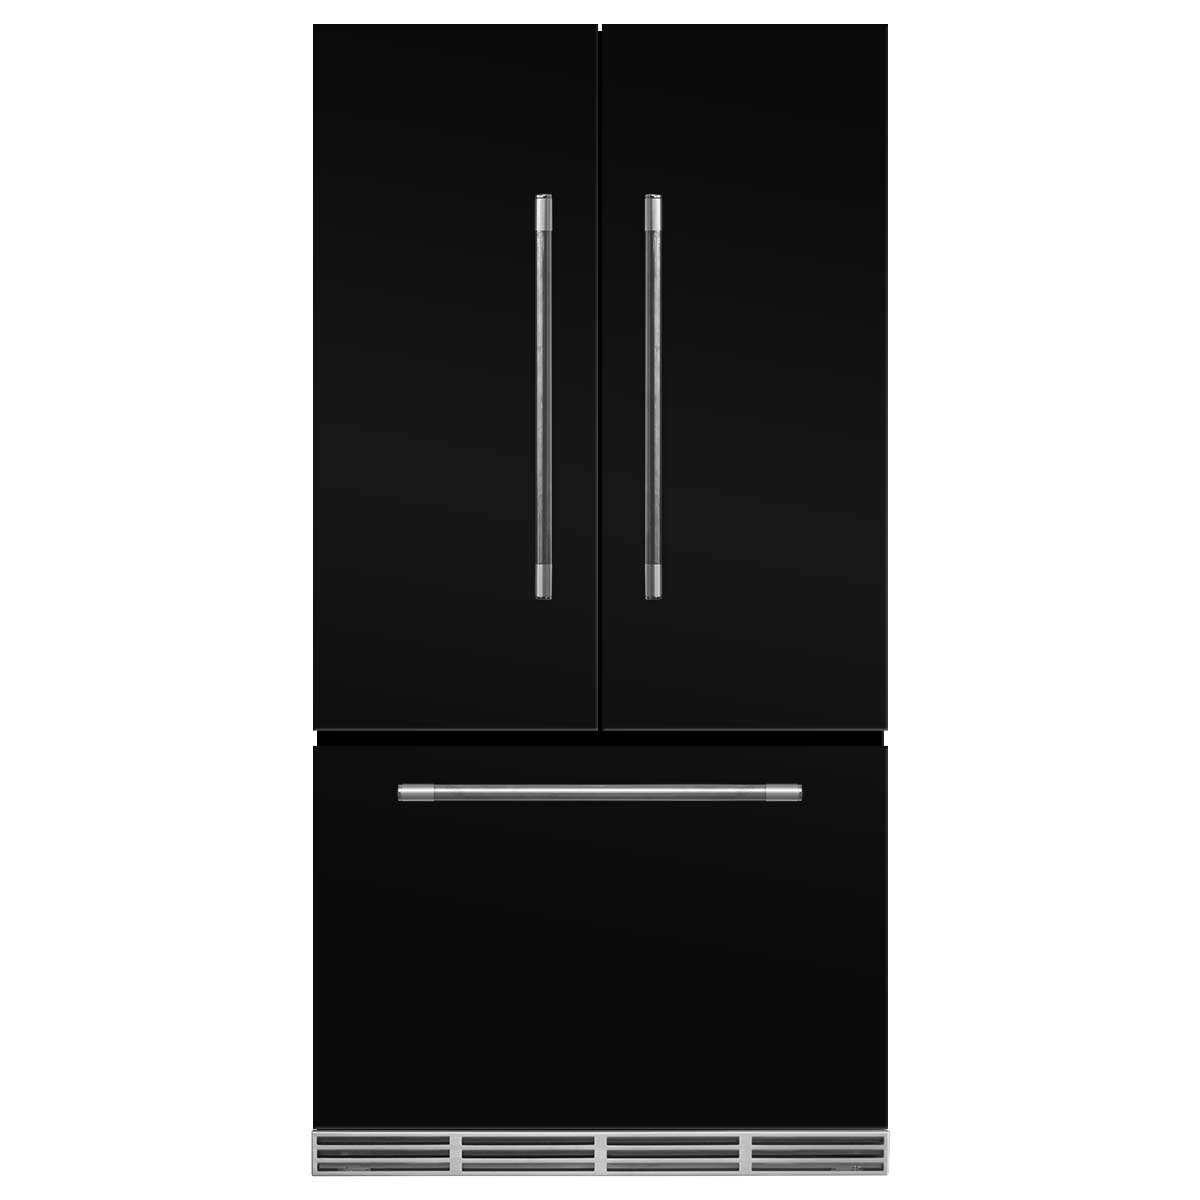 Marvel Mercury French Door Counter-Depth Refrigerator- Marvel Mercury French Door Refrigerator Scarlet